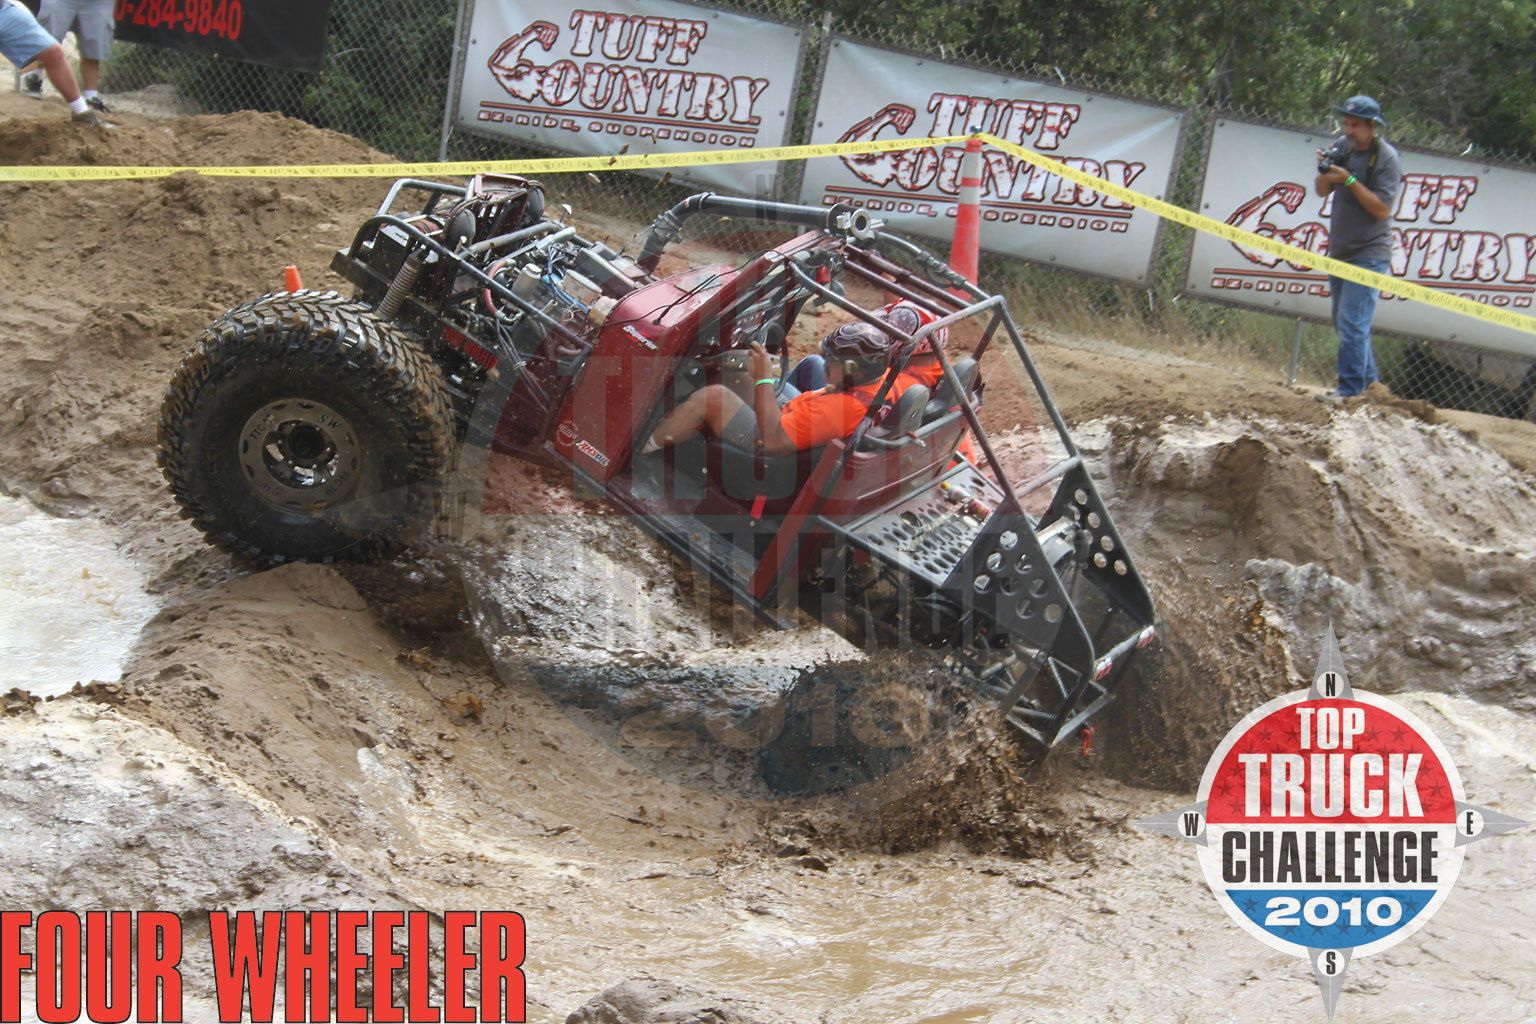 2010 Top Truck Challenge Obstacle Course Pj Hale 1948 Willys Buggy